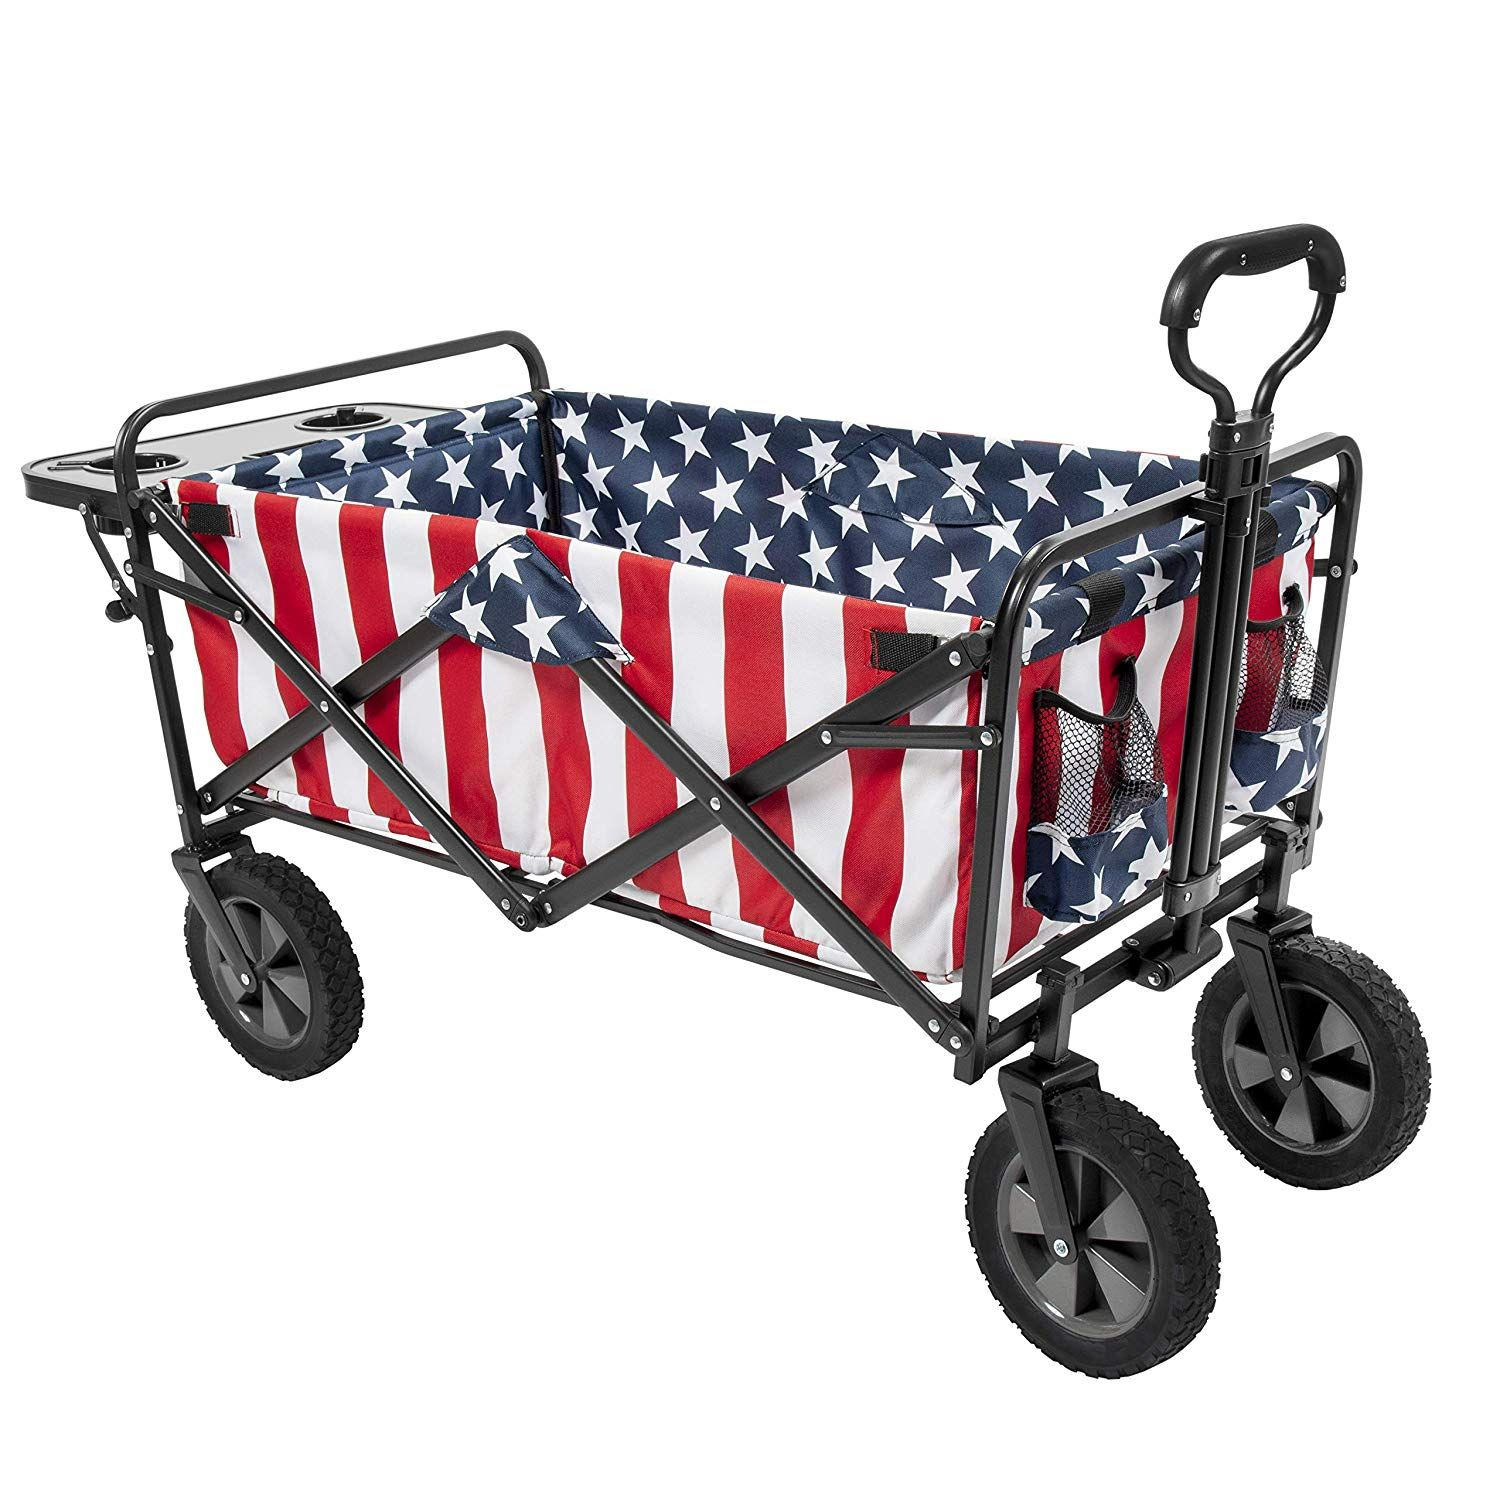 119.99 In Stock EASY TRANSPORT Perfect for hauling gear